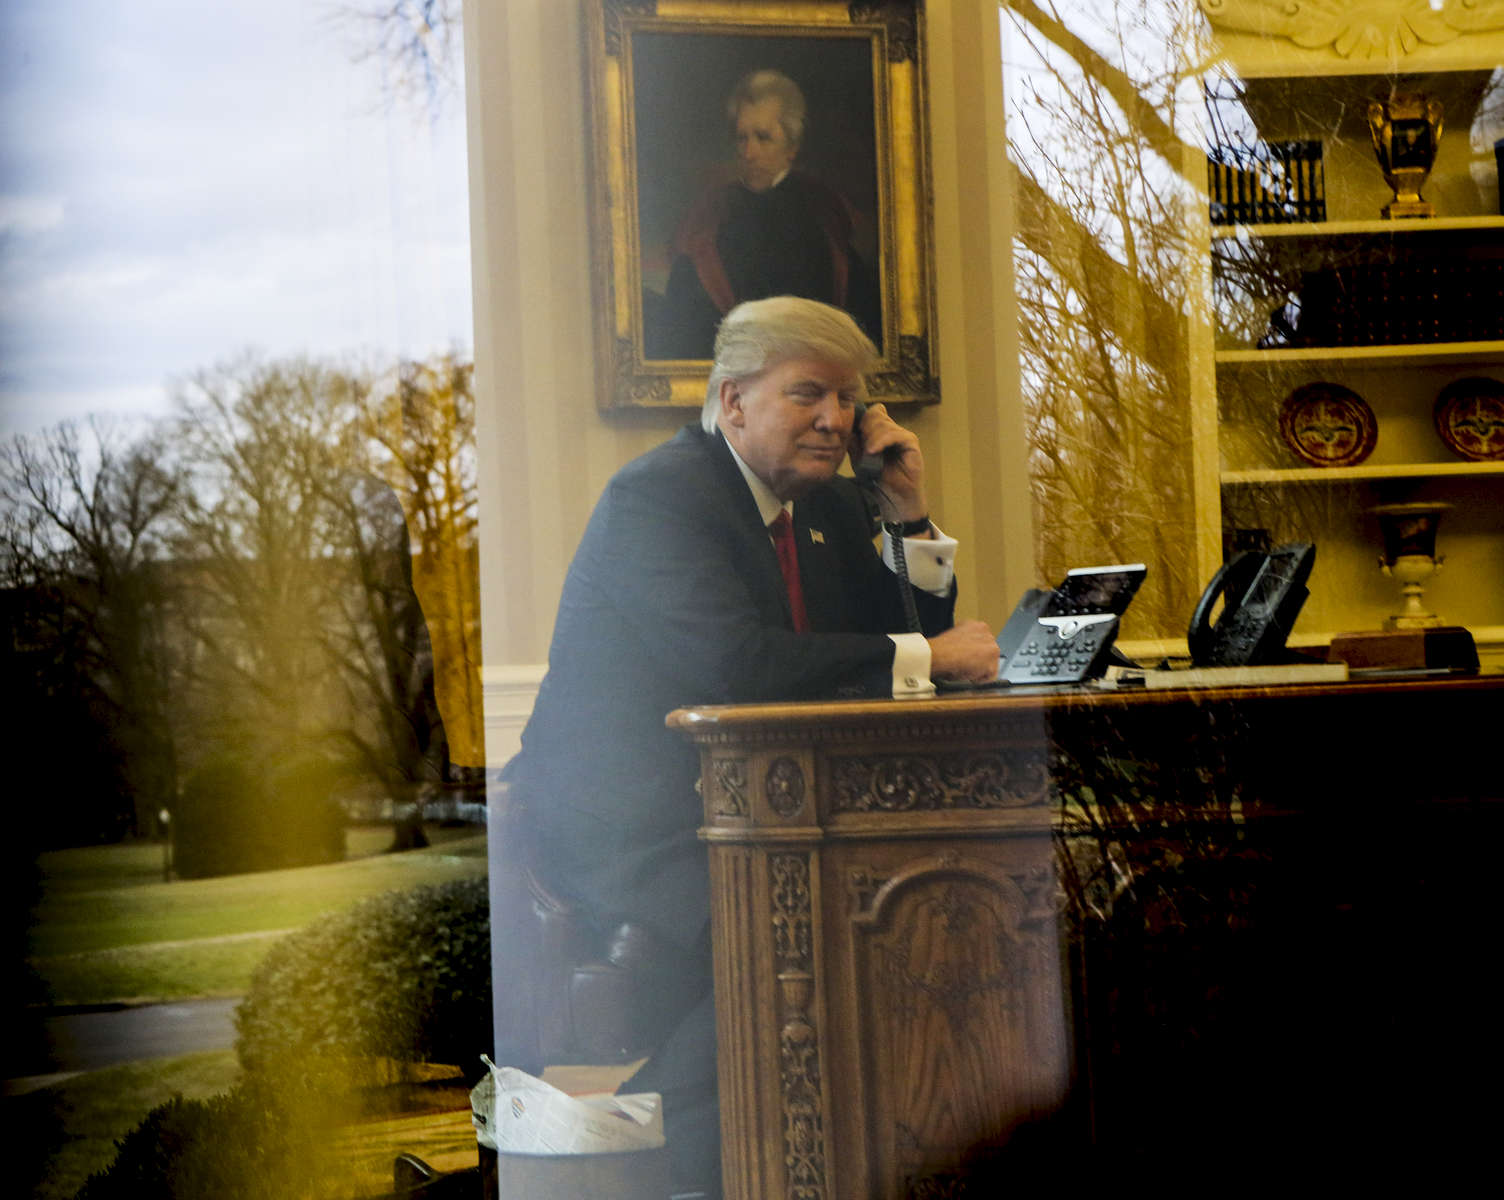 US President Donald Trump on the phone in the Ovale Office.